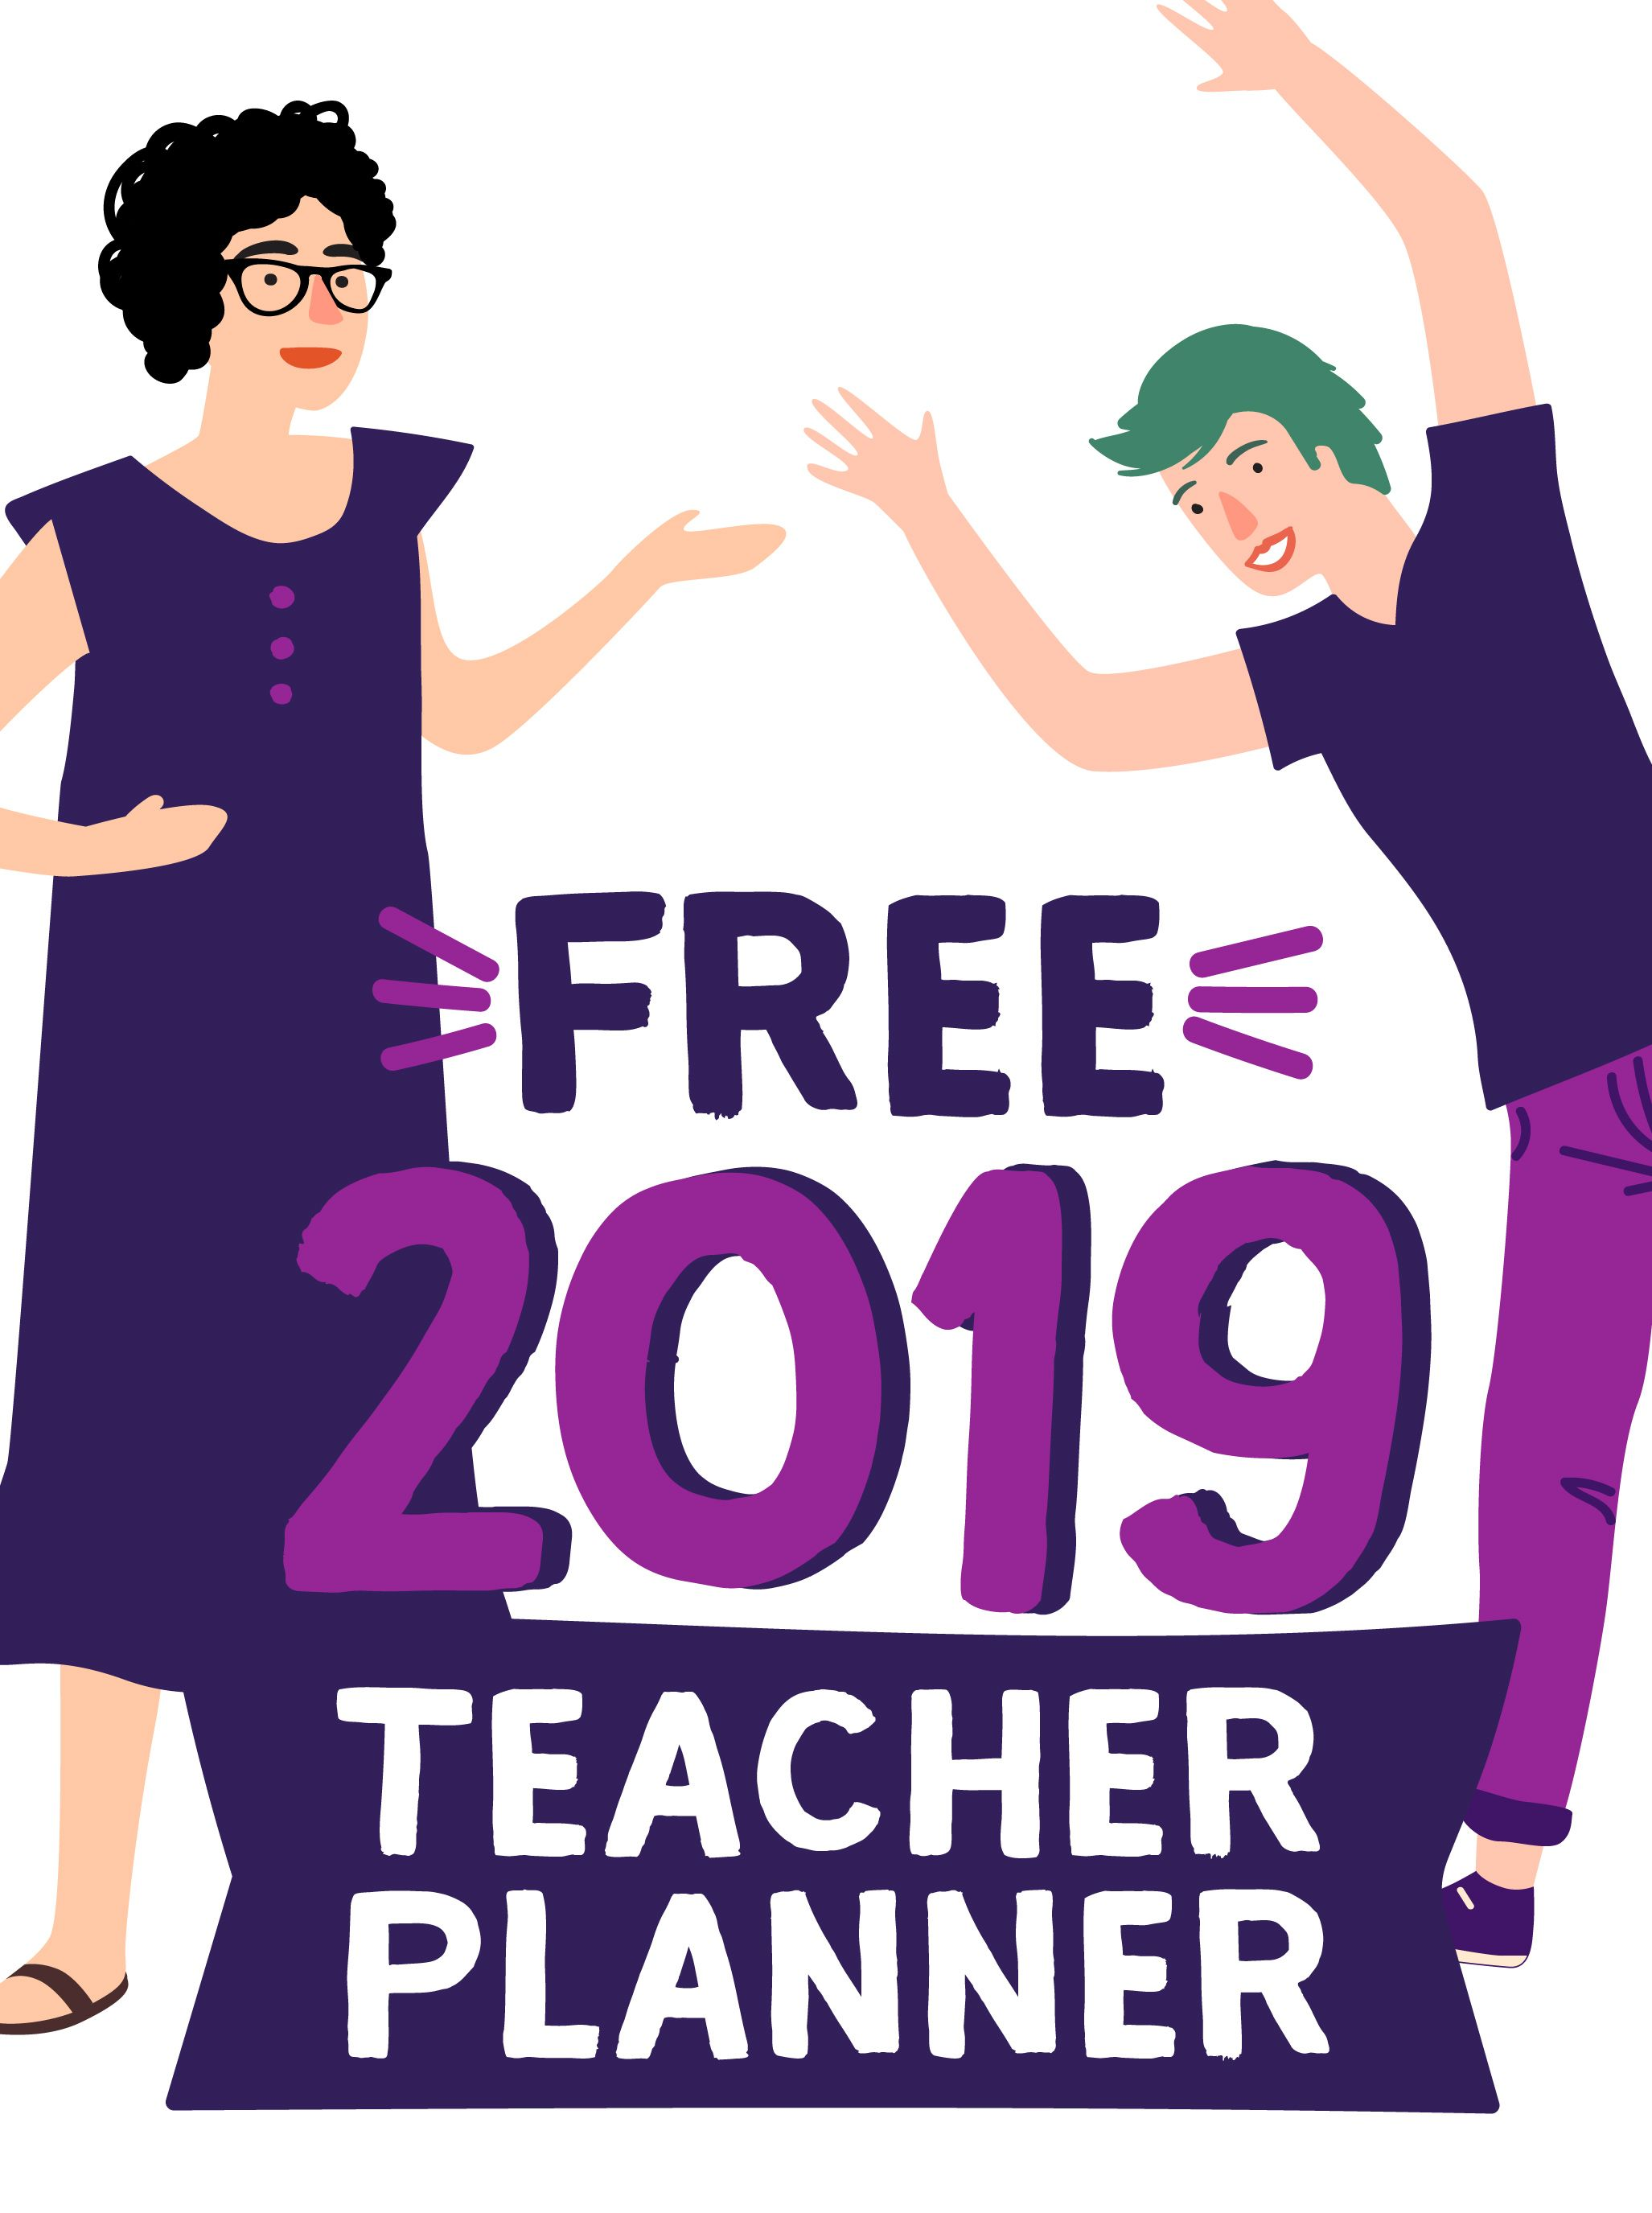 Download the FREE OneNote 2019 Teacher Planner, designed by